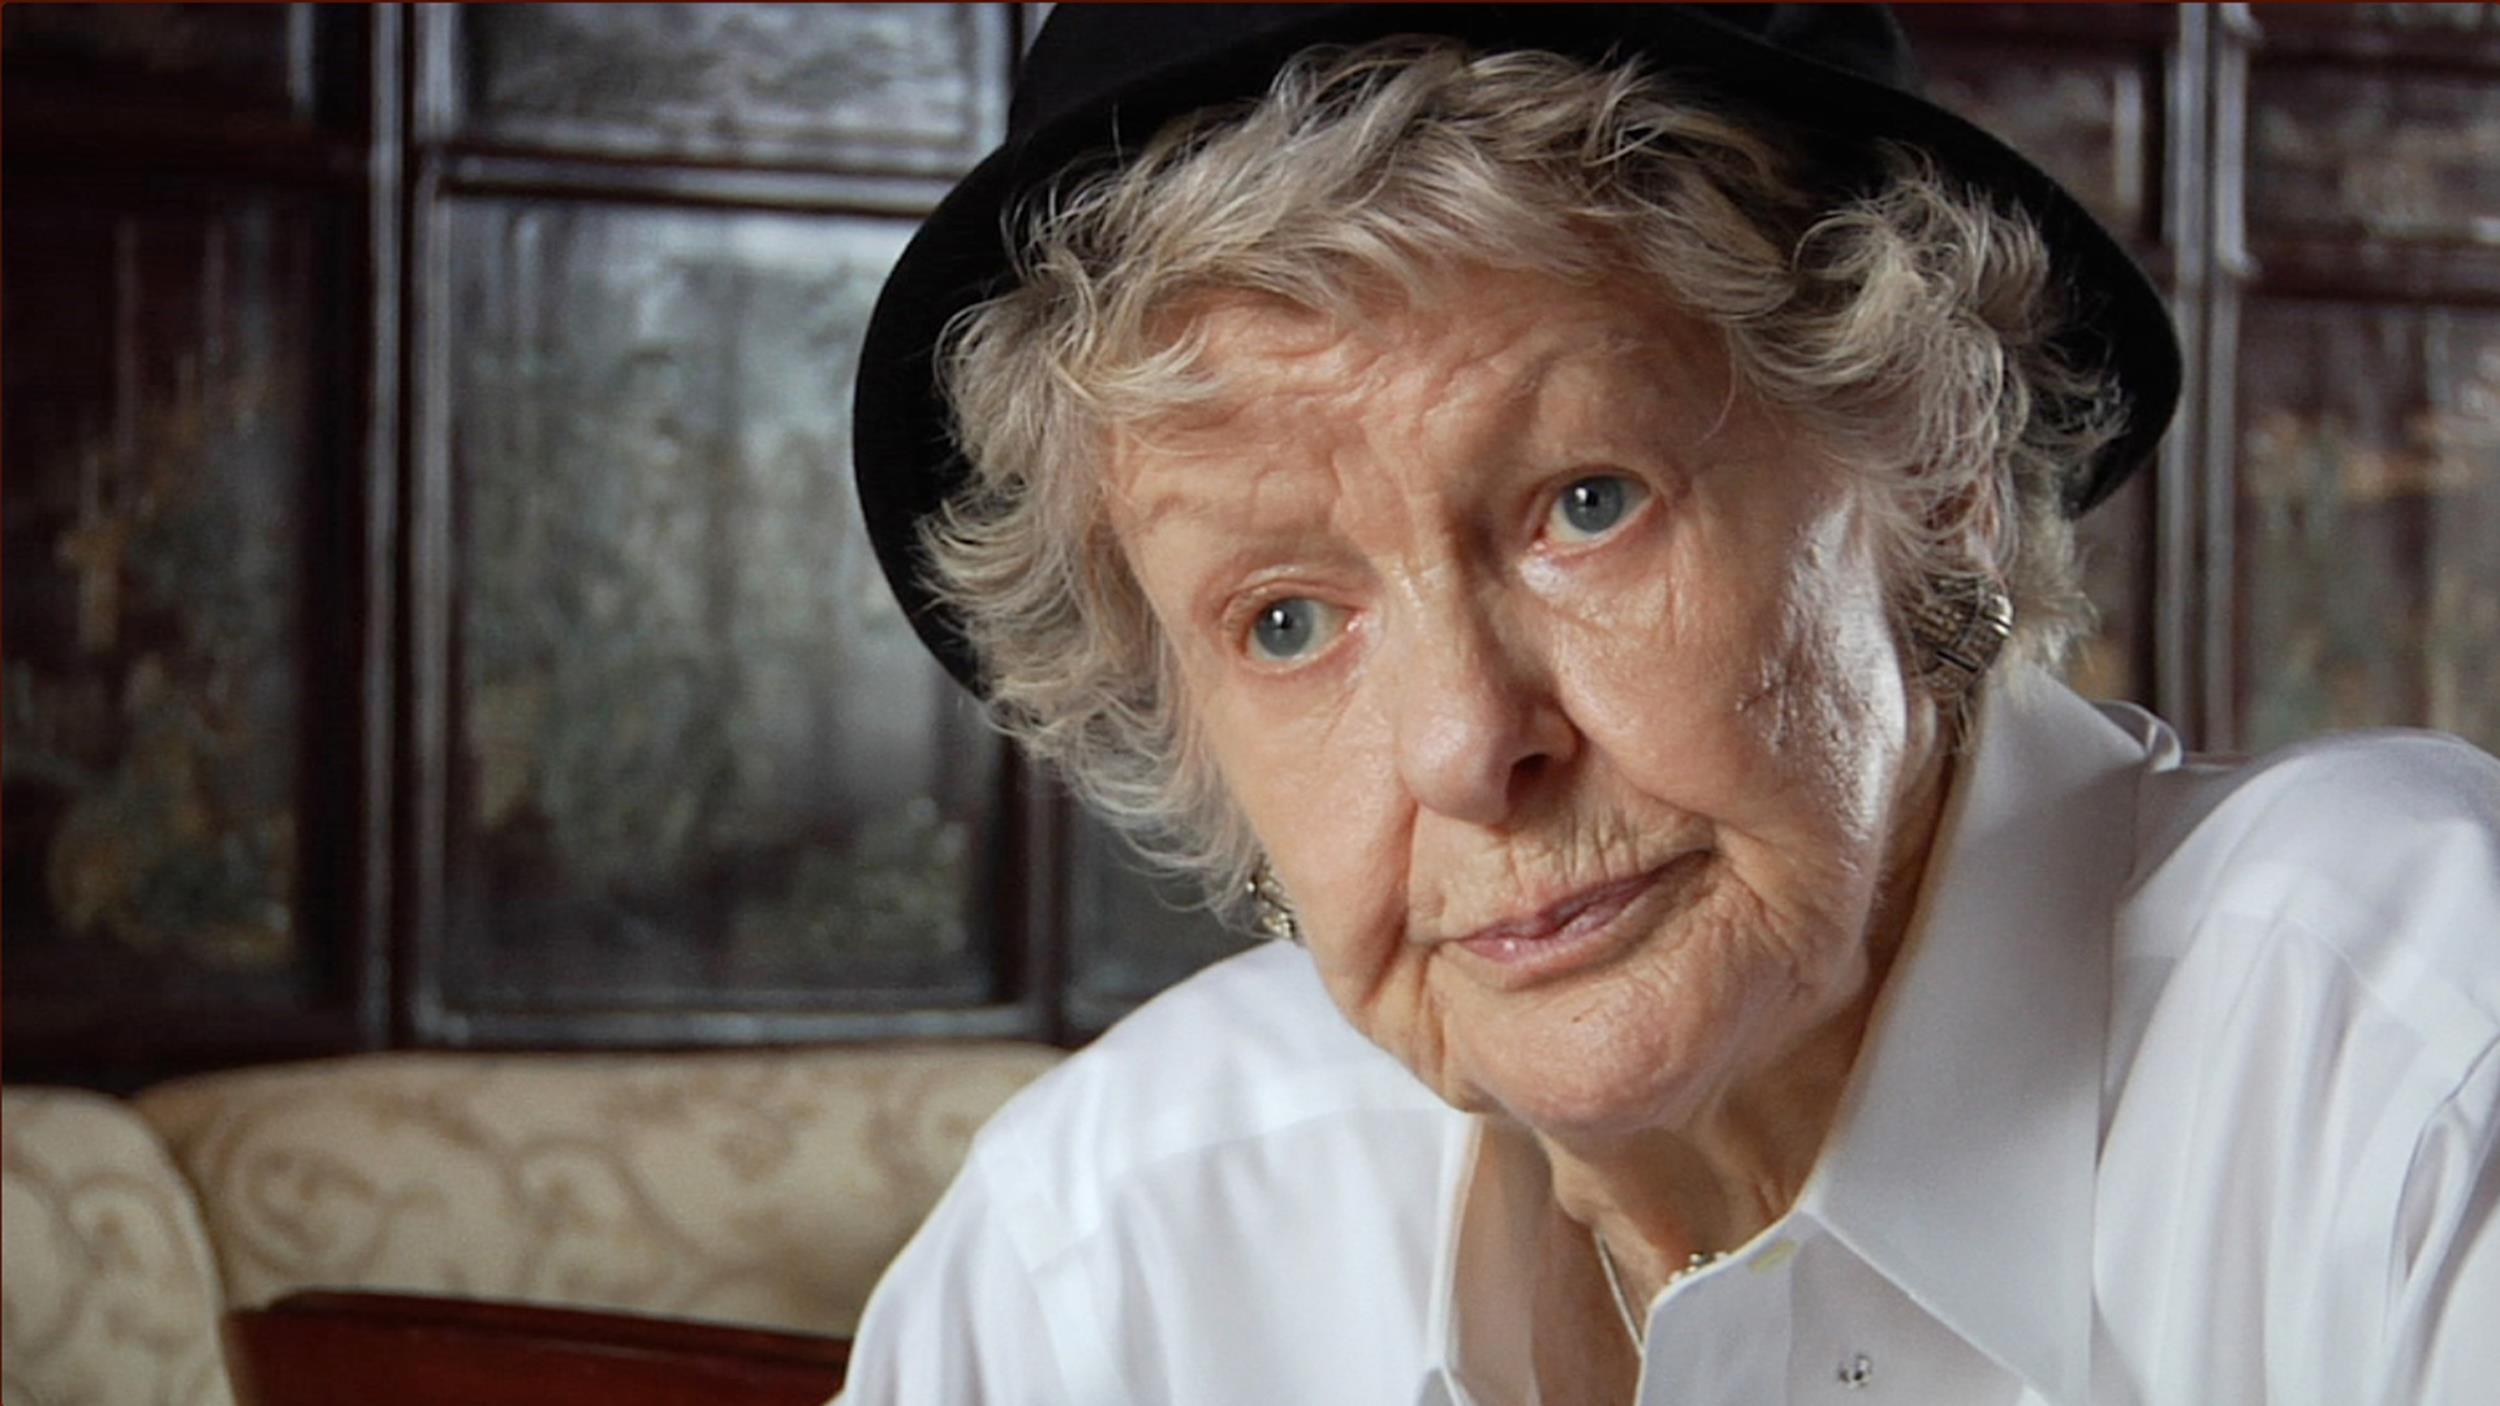 Image: Elaine Stritch